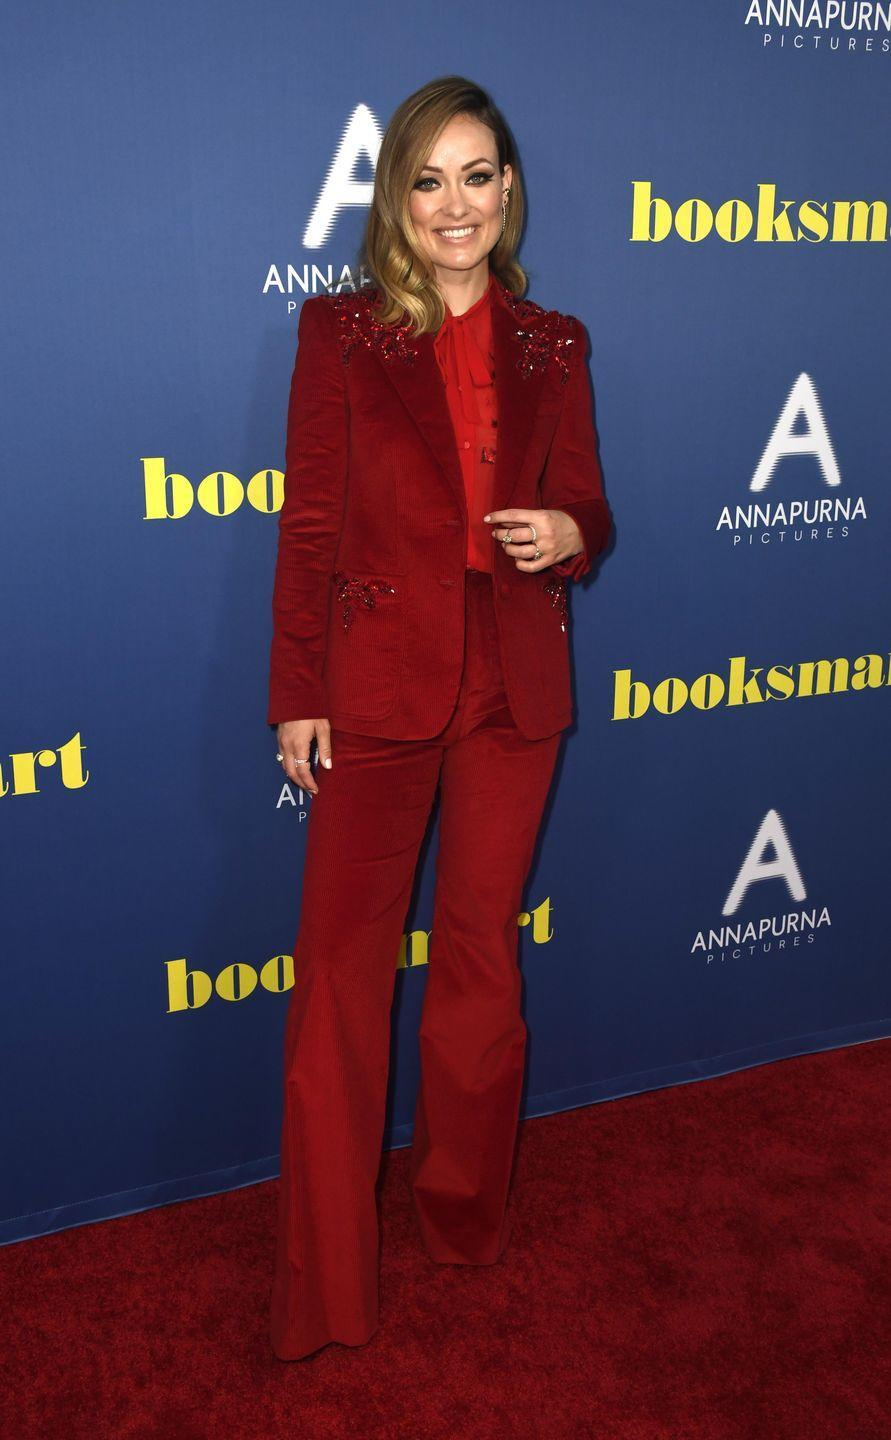 <p>The director looked stunning in a deep red bedazzled Dundas suit with a red button-up shirt at the premiere. <br></p>